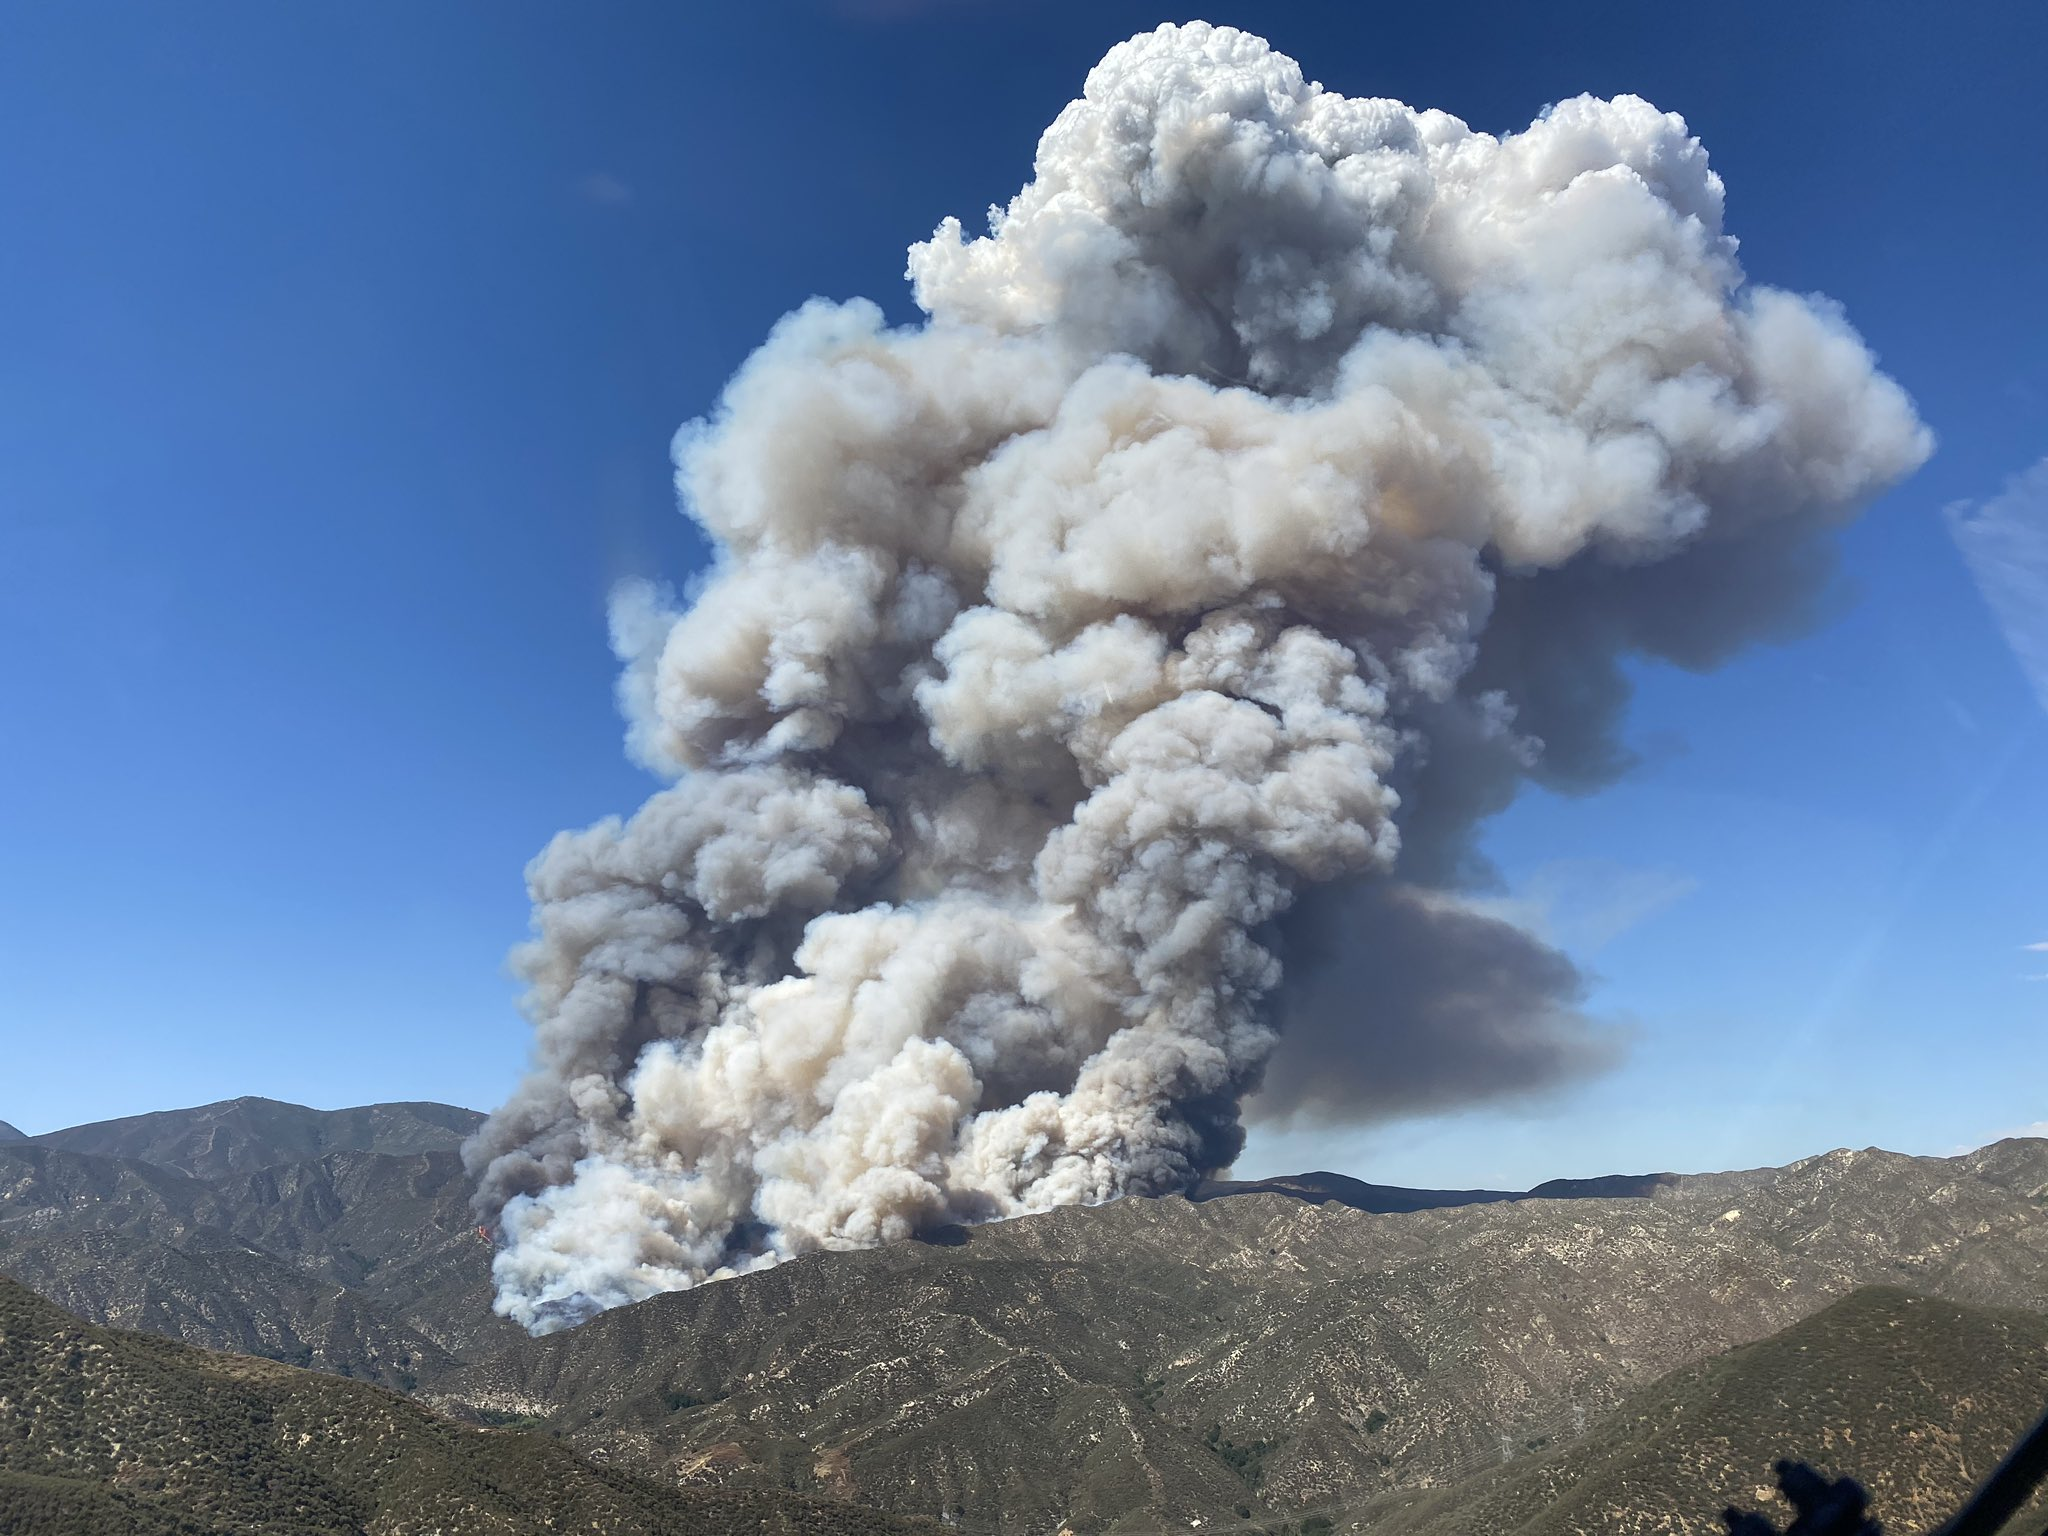 Homes Burn in 10,000-Acre Fire North of Los Angeles, San Diego Crews Sent to Help